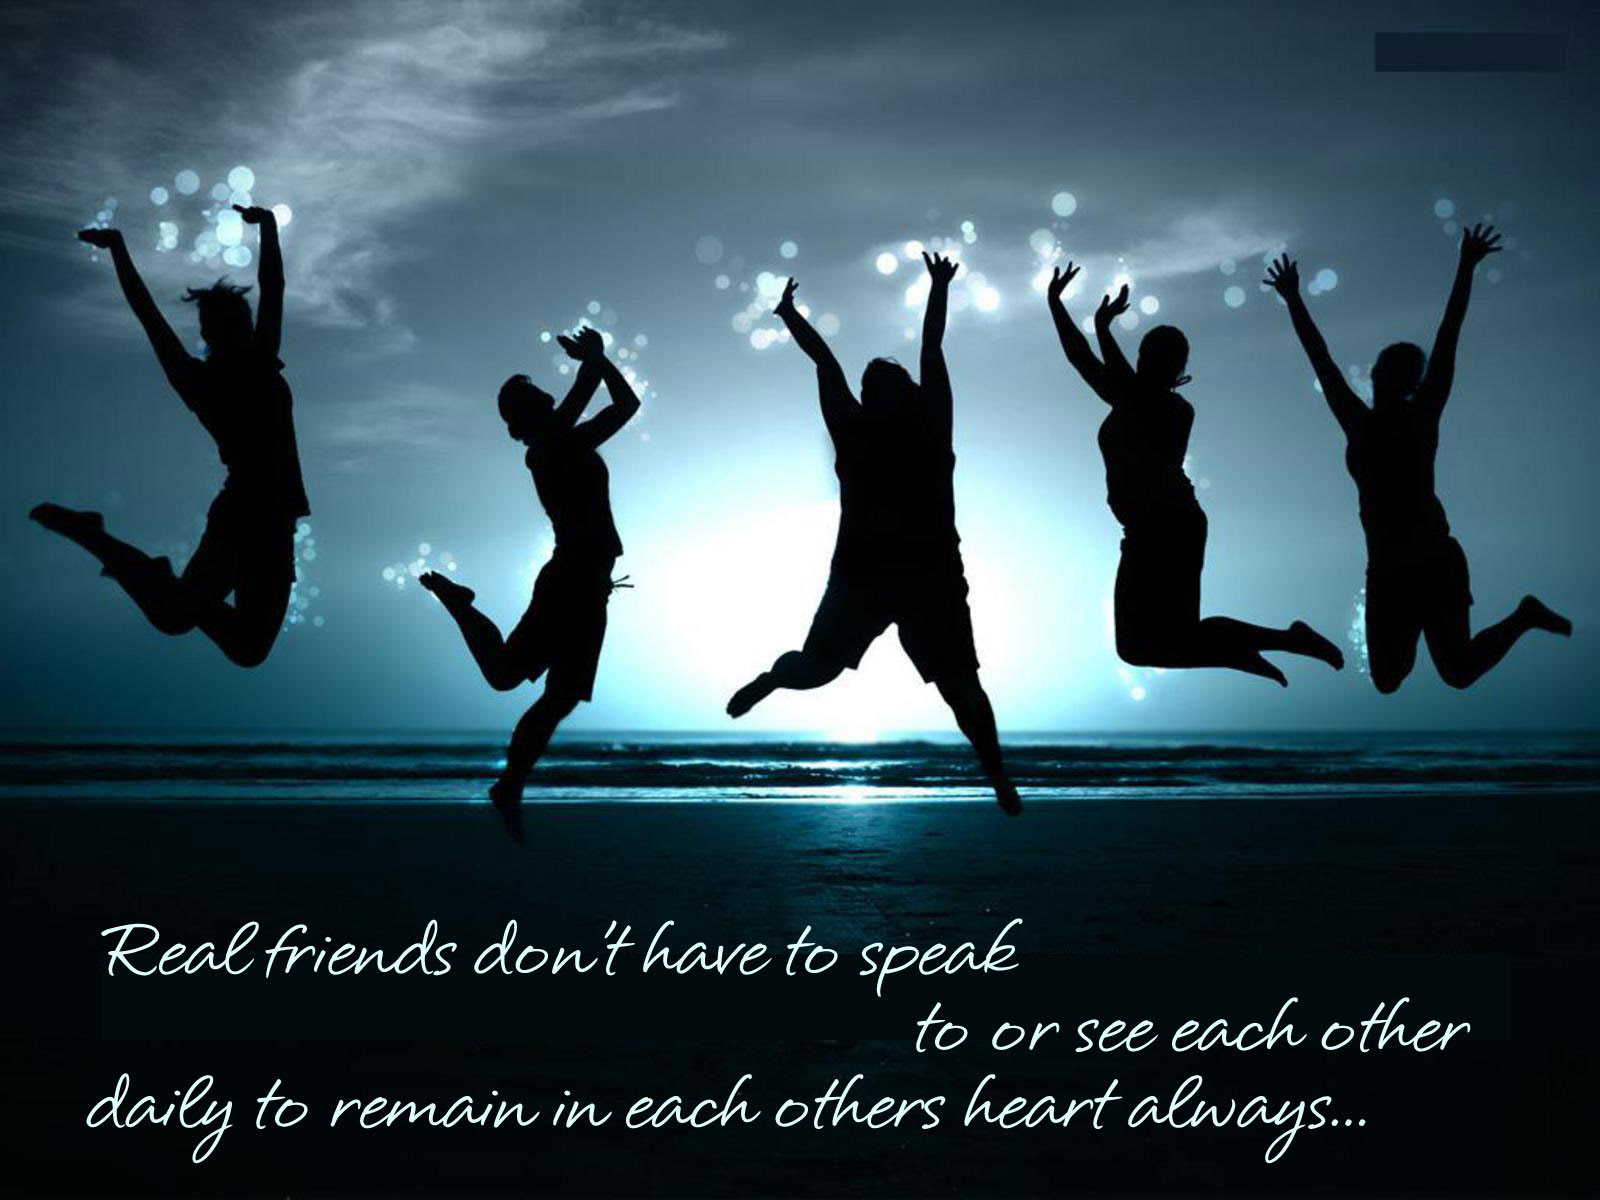 Quotes And Icons Images Friendship Quote 1 Hd Wallpaper And